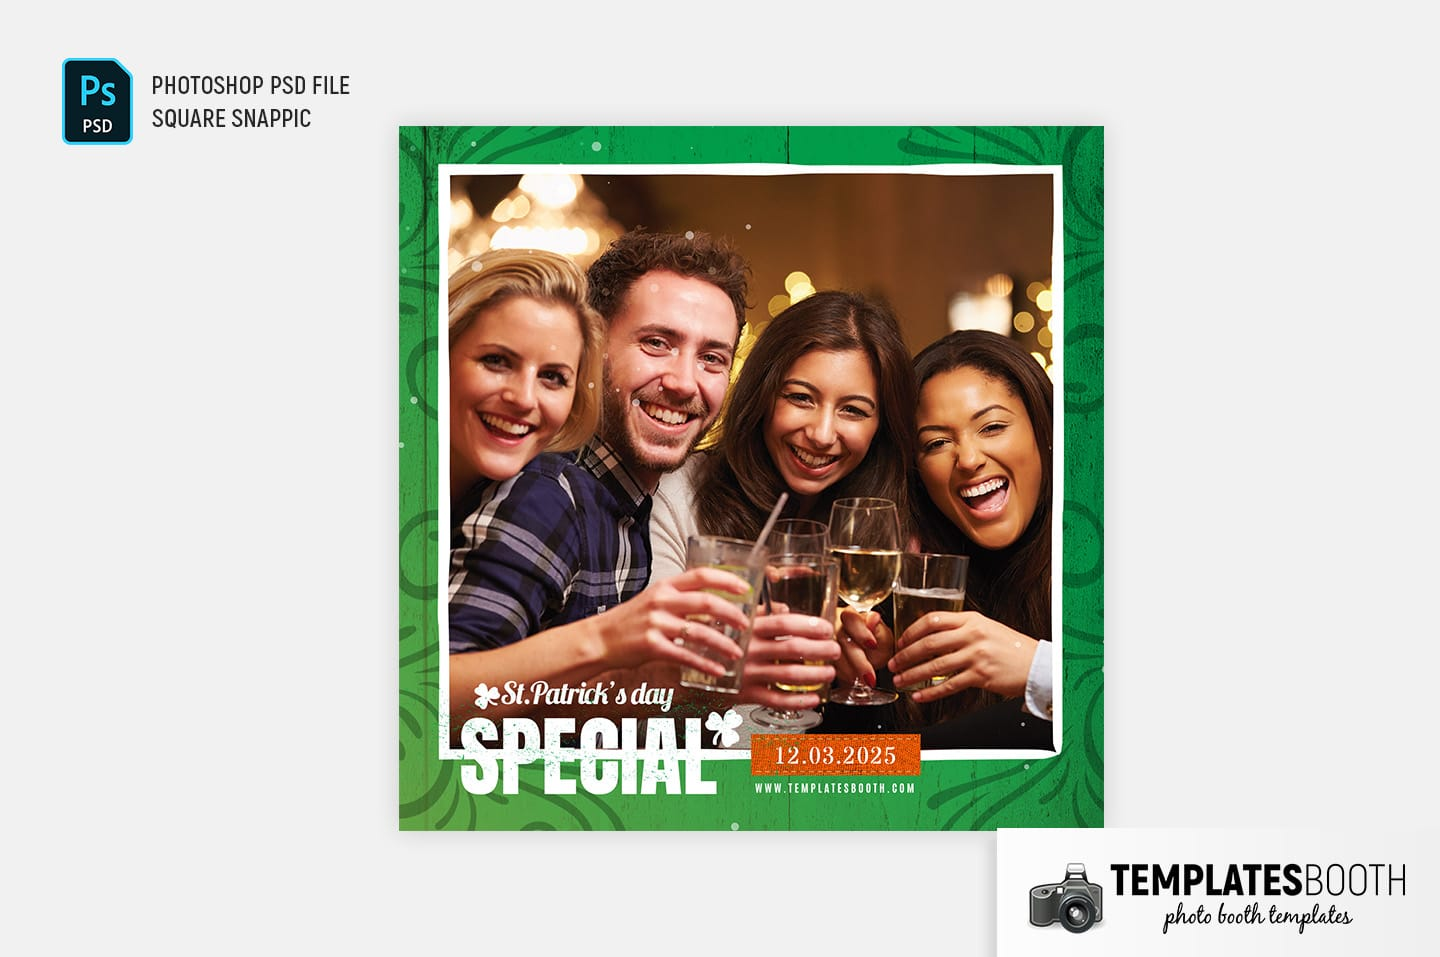 St. Patrick's Day Photo Booth Template